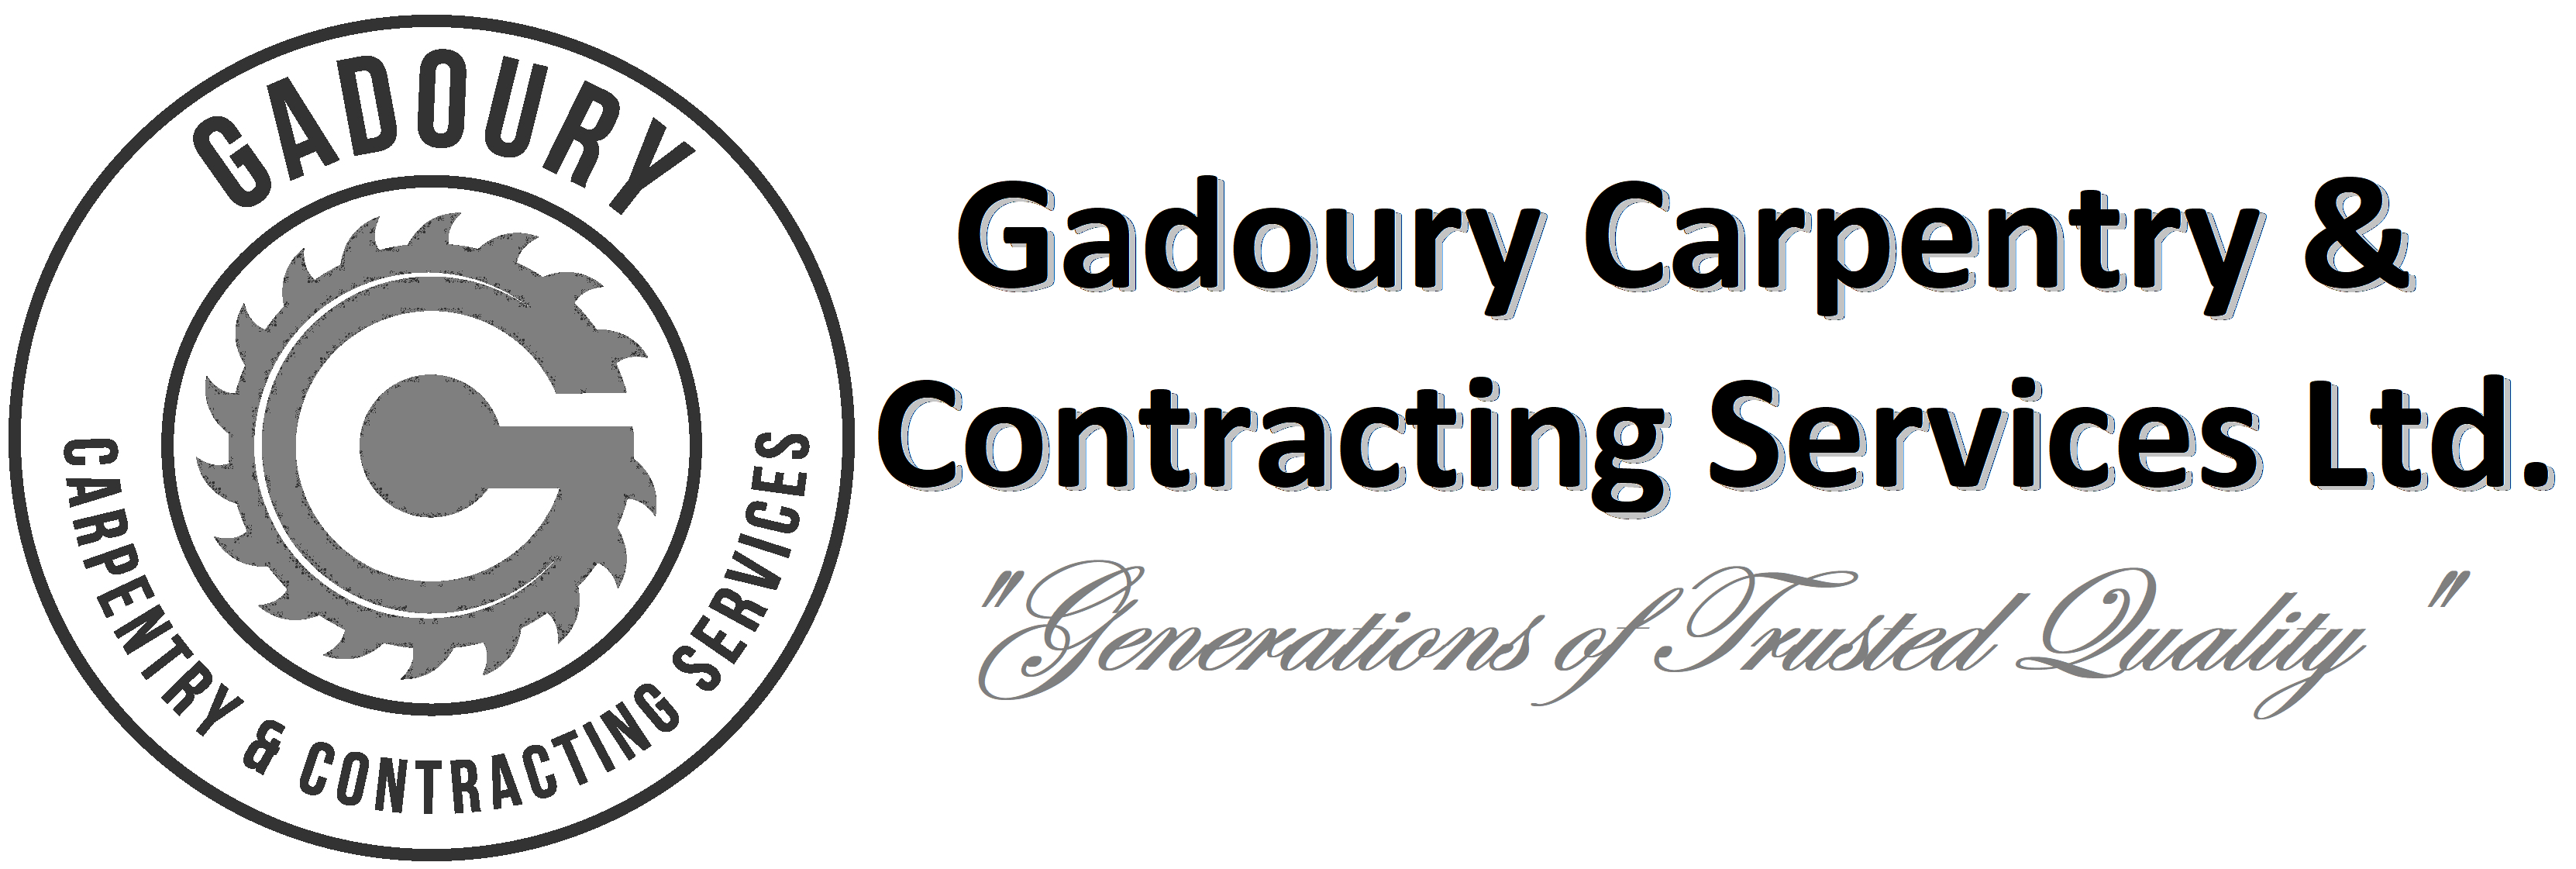 Gadoury Carpentry & Contracting Services Ltd.